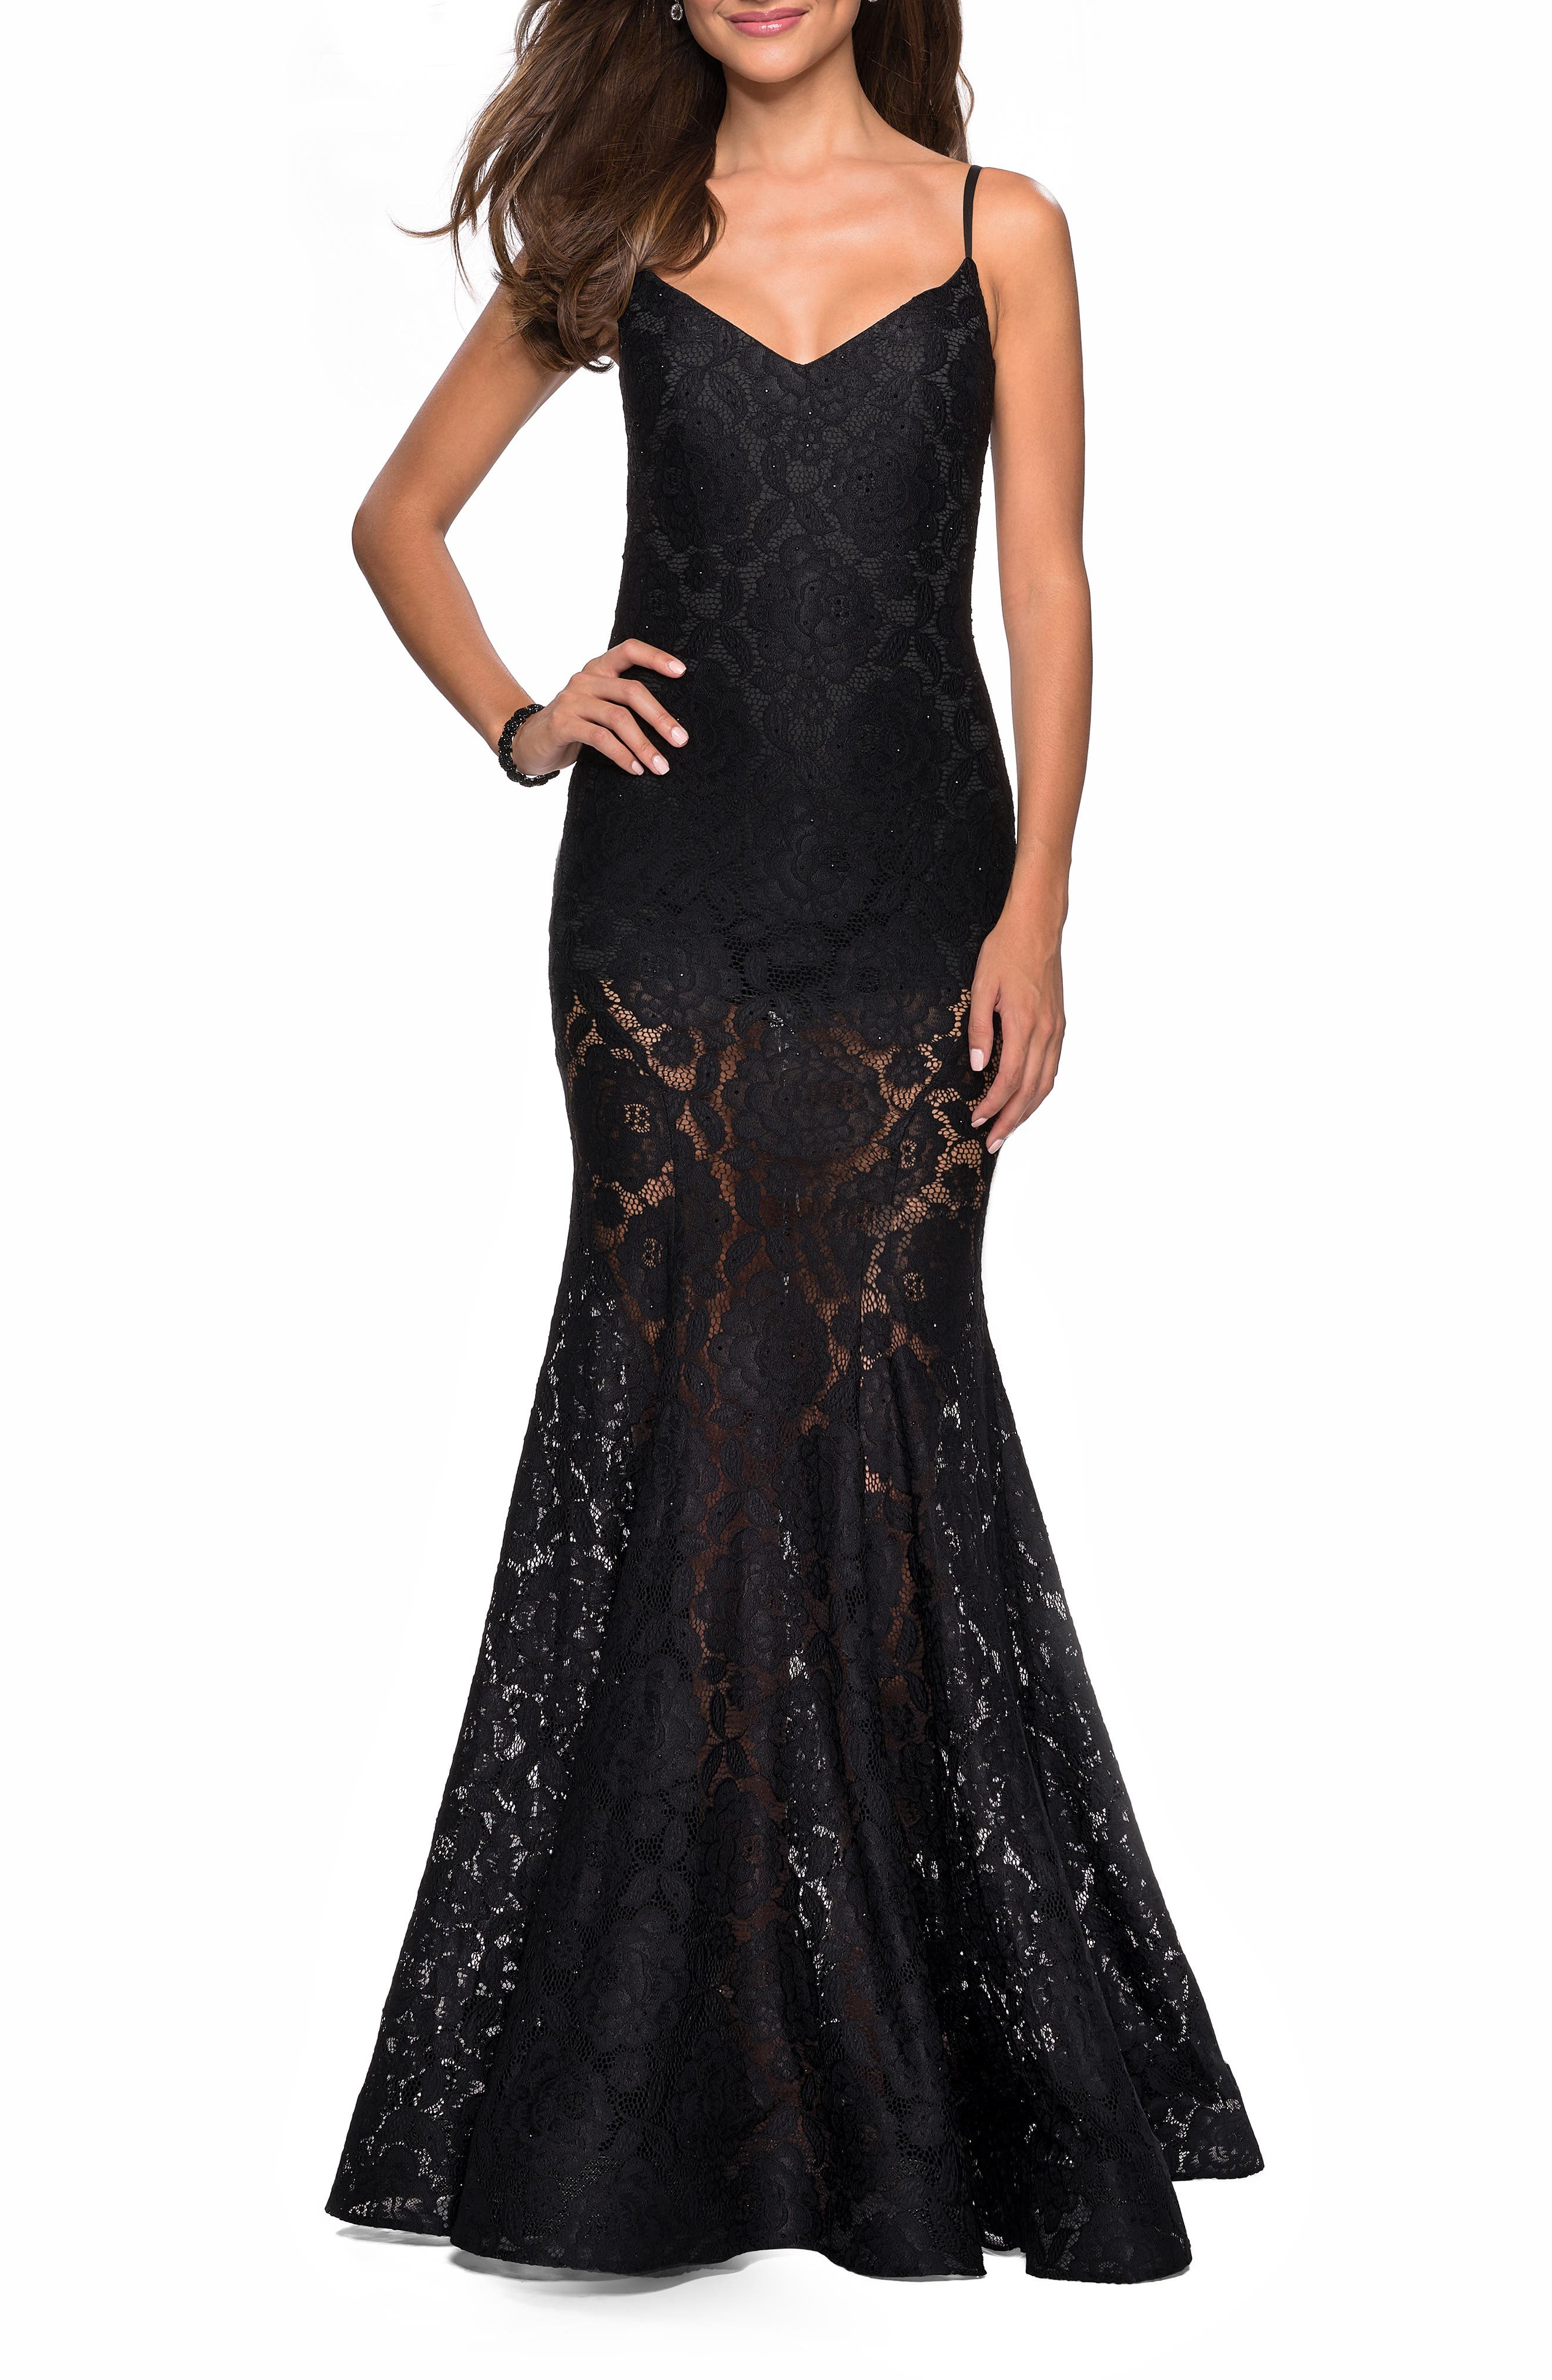 La Femme Stretch Lace Mermaid Evening Dress, Black